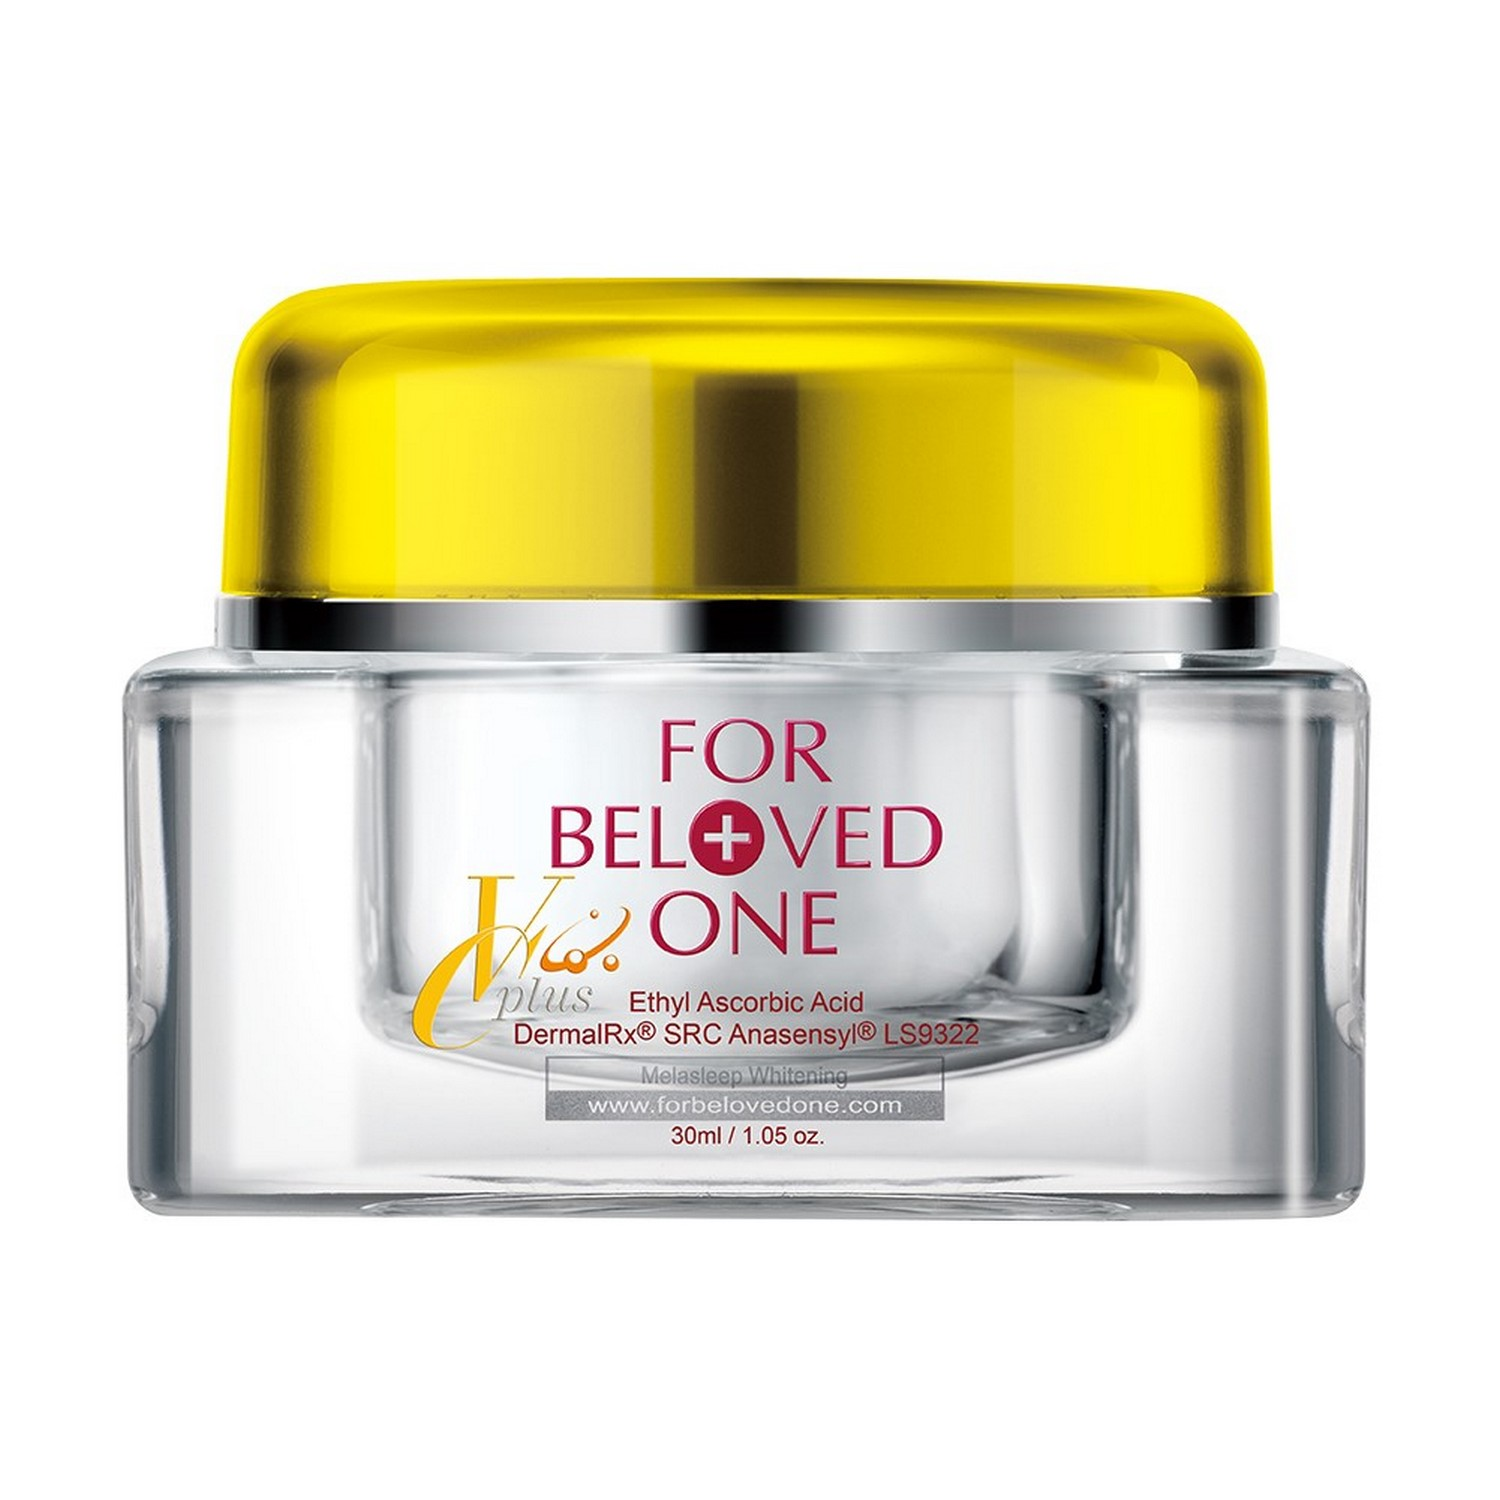 For Beloved One Melasleep Whitening Ethyl Ascorbic Acid Surge Cream (30 ml / 1.06 oz)